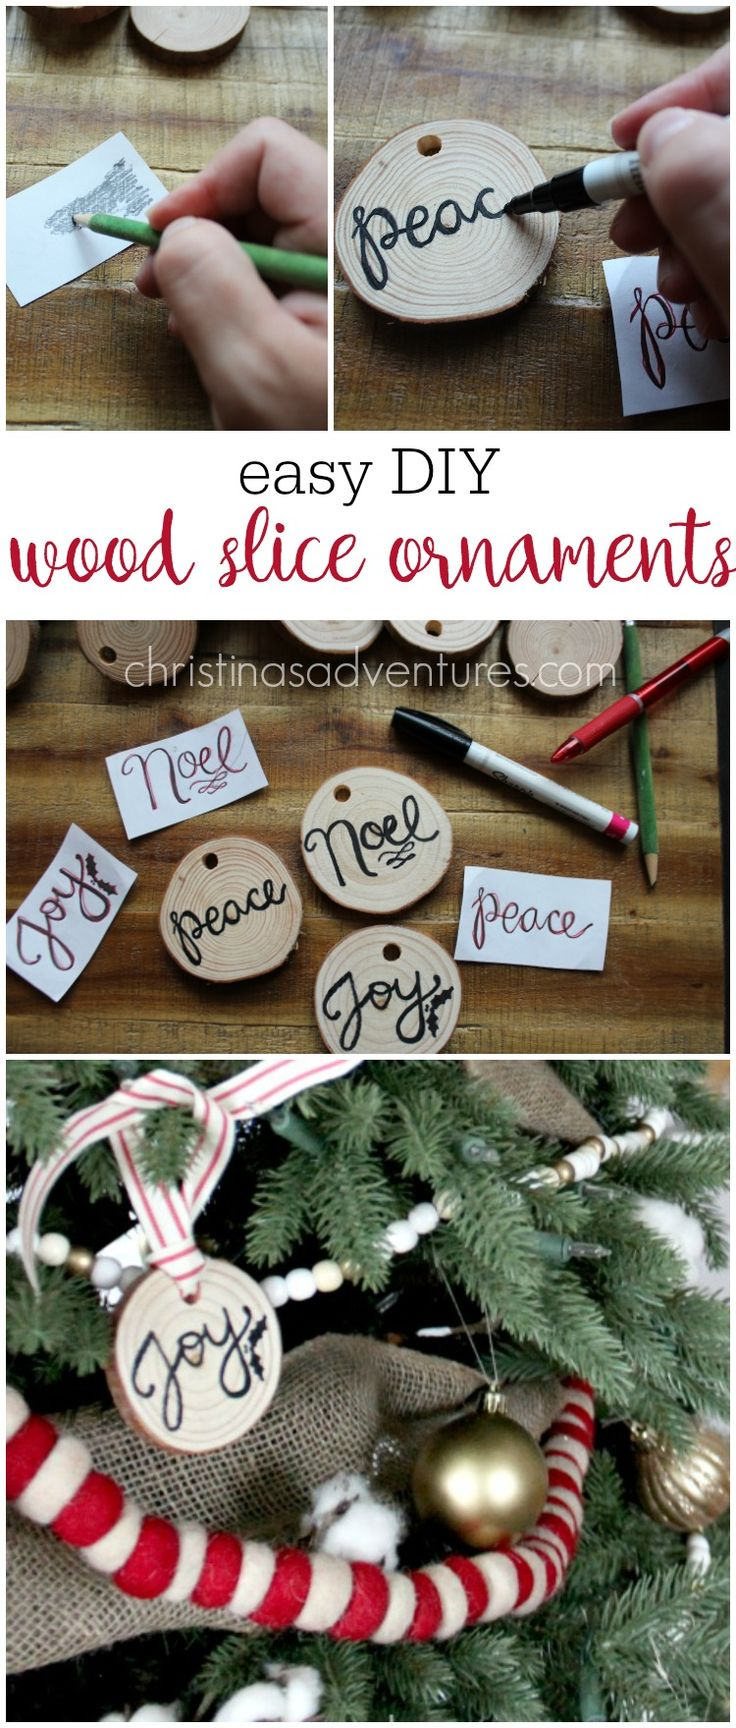 EASY DIY wood slice ornaments - nice handwriting not required! These would make great gift tags too!